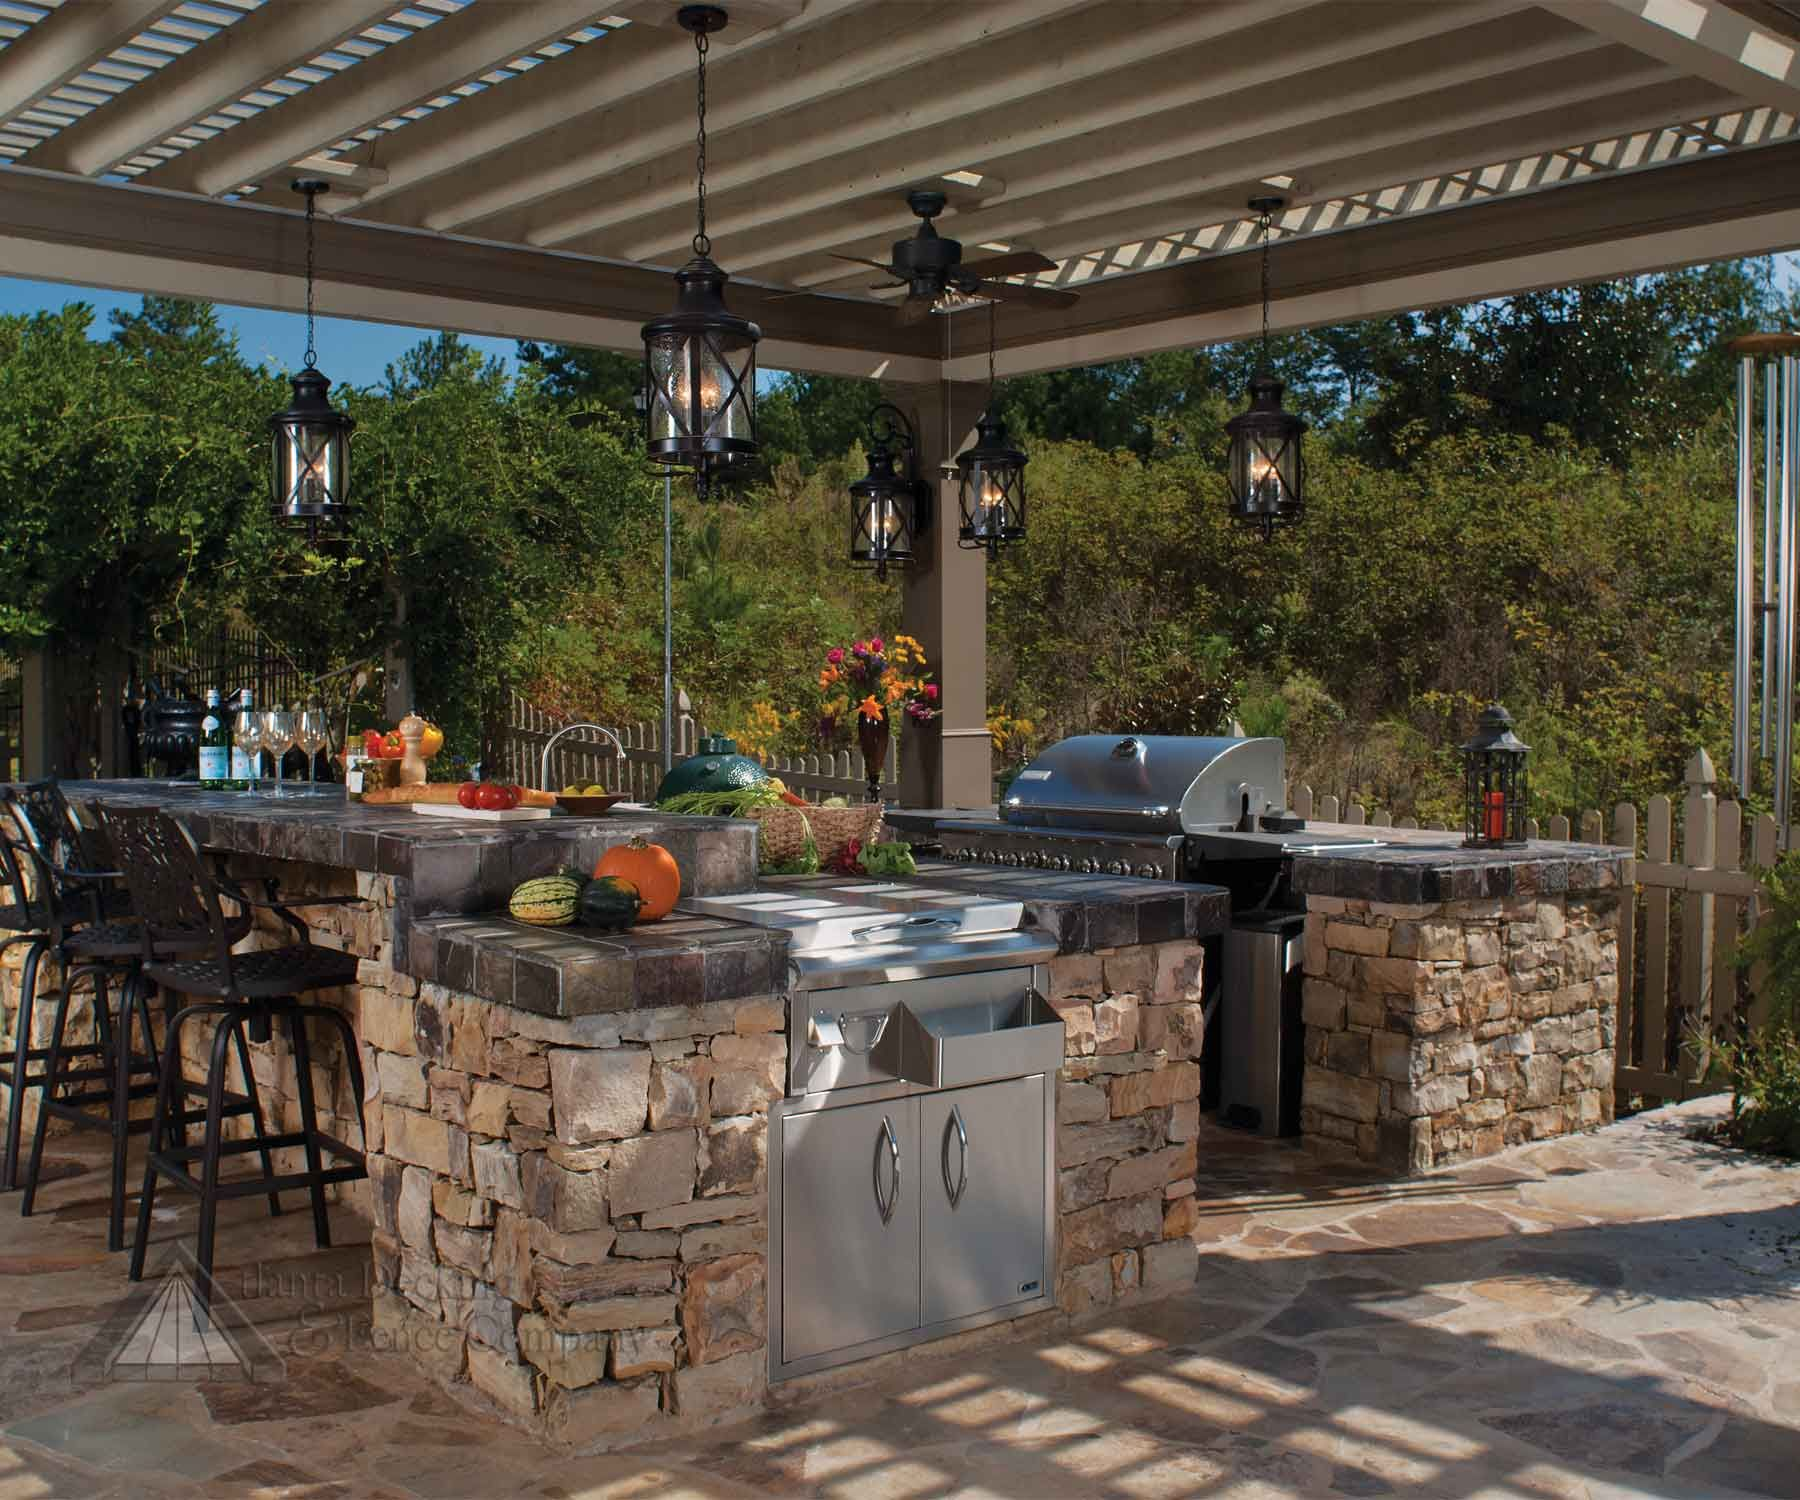 Amazing outdoor kitchens part 3 pergolas kitchens and for Outdoor kitchen wall ideas